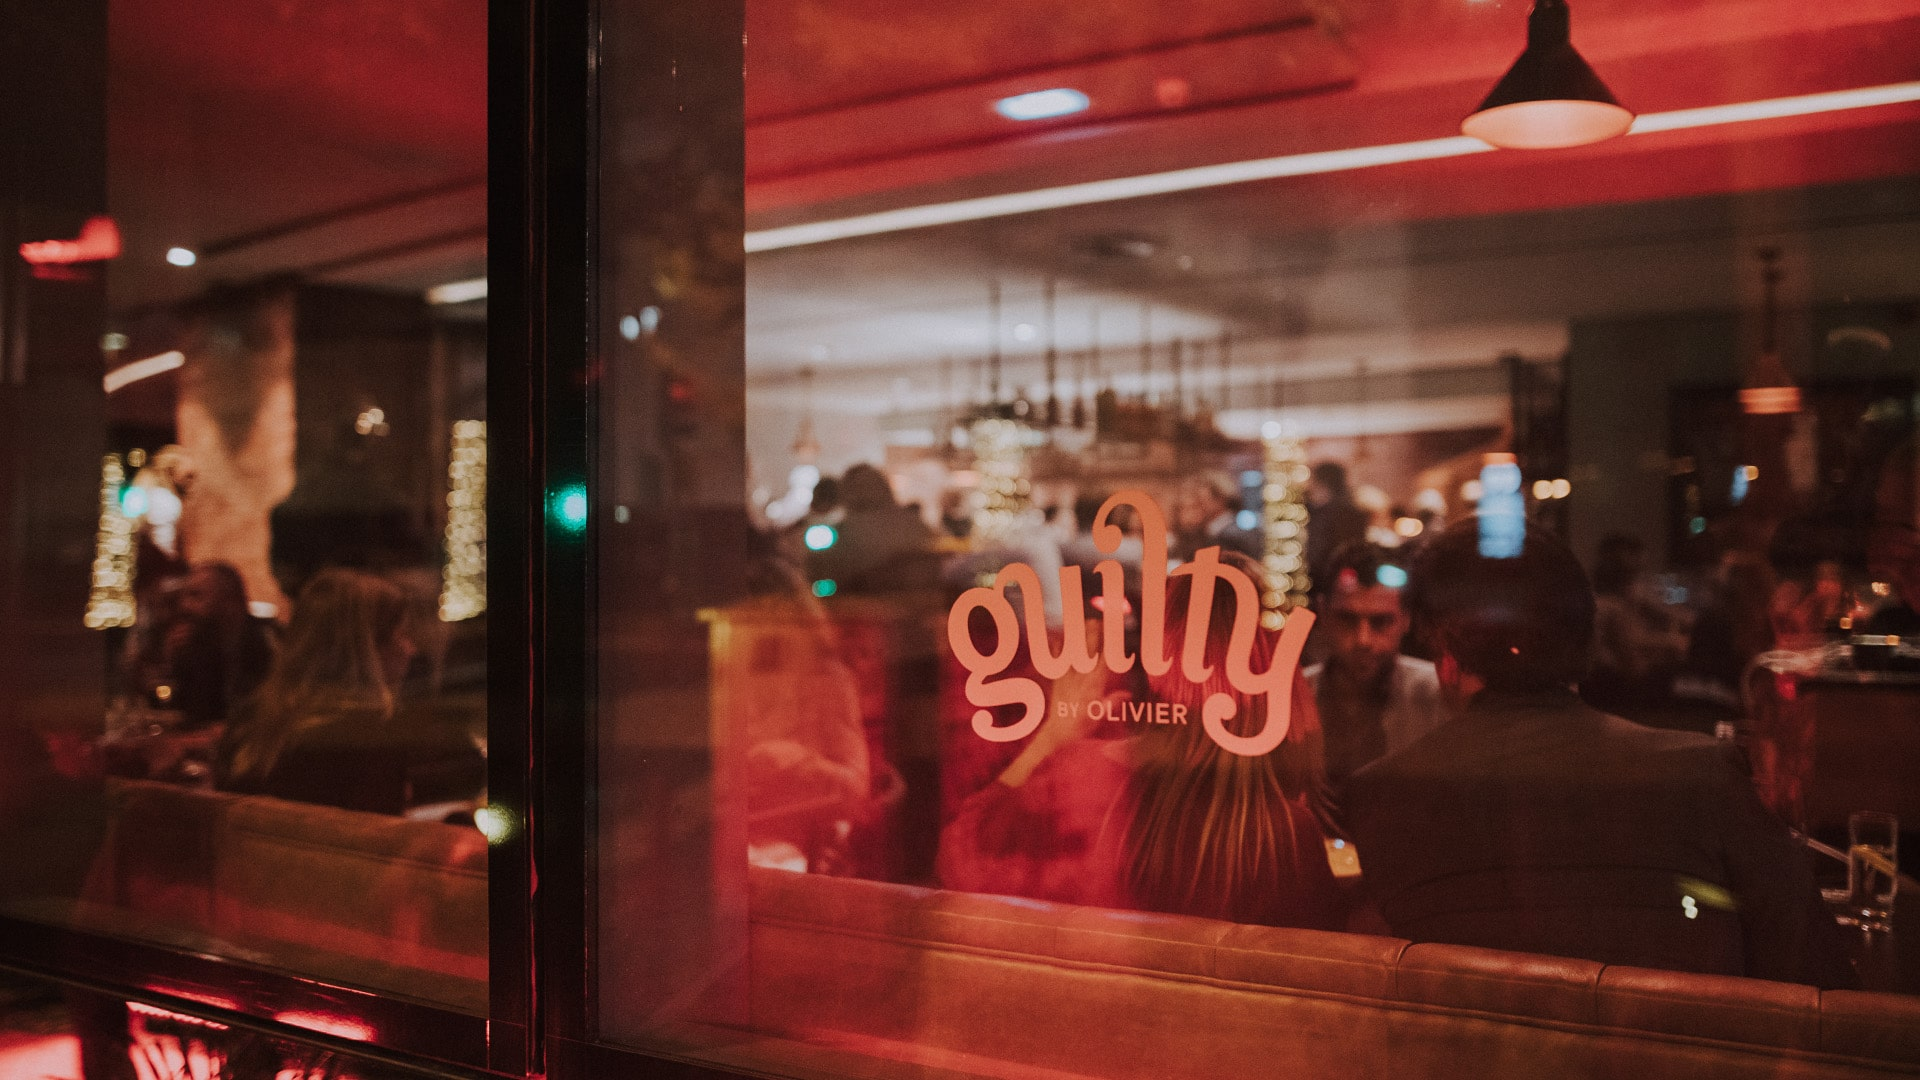 Irreverent Food Concept Lands In Porto: Meet The New Guilty By Oliver  guilty by olivier Irreverent Food Concept Lands In Porto: Meet The New Guilty By Olivier guiltyoriente header1b